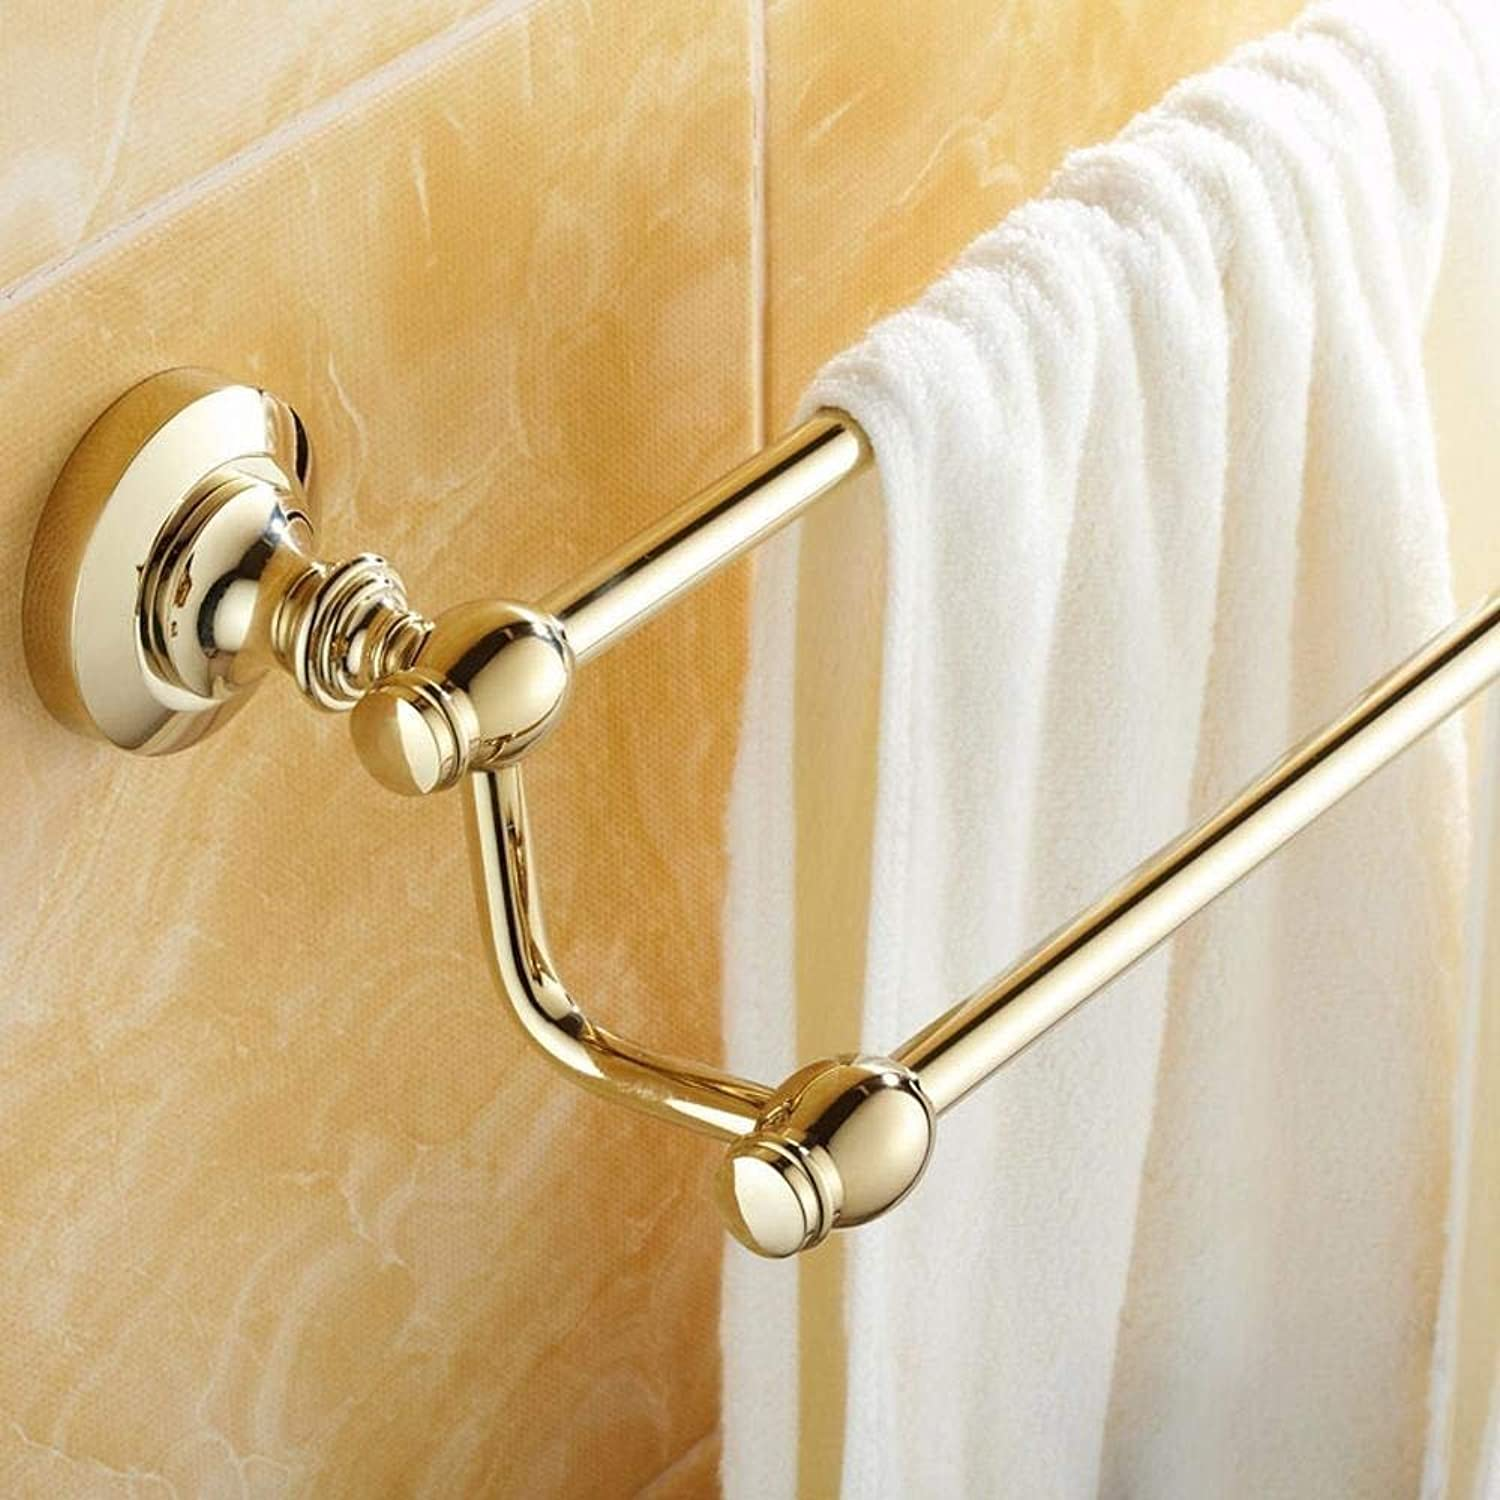 The'Dry-Towels Rationalization, Bathroom, Copper, gold Support to Double Rod